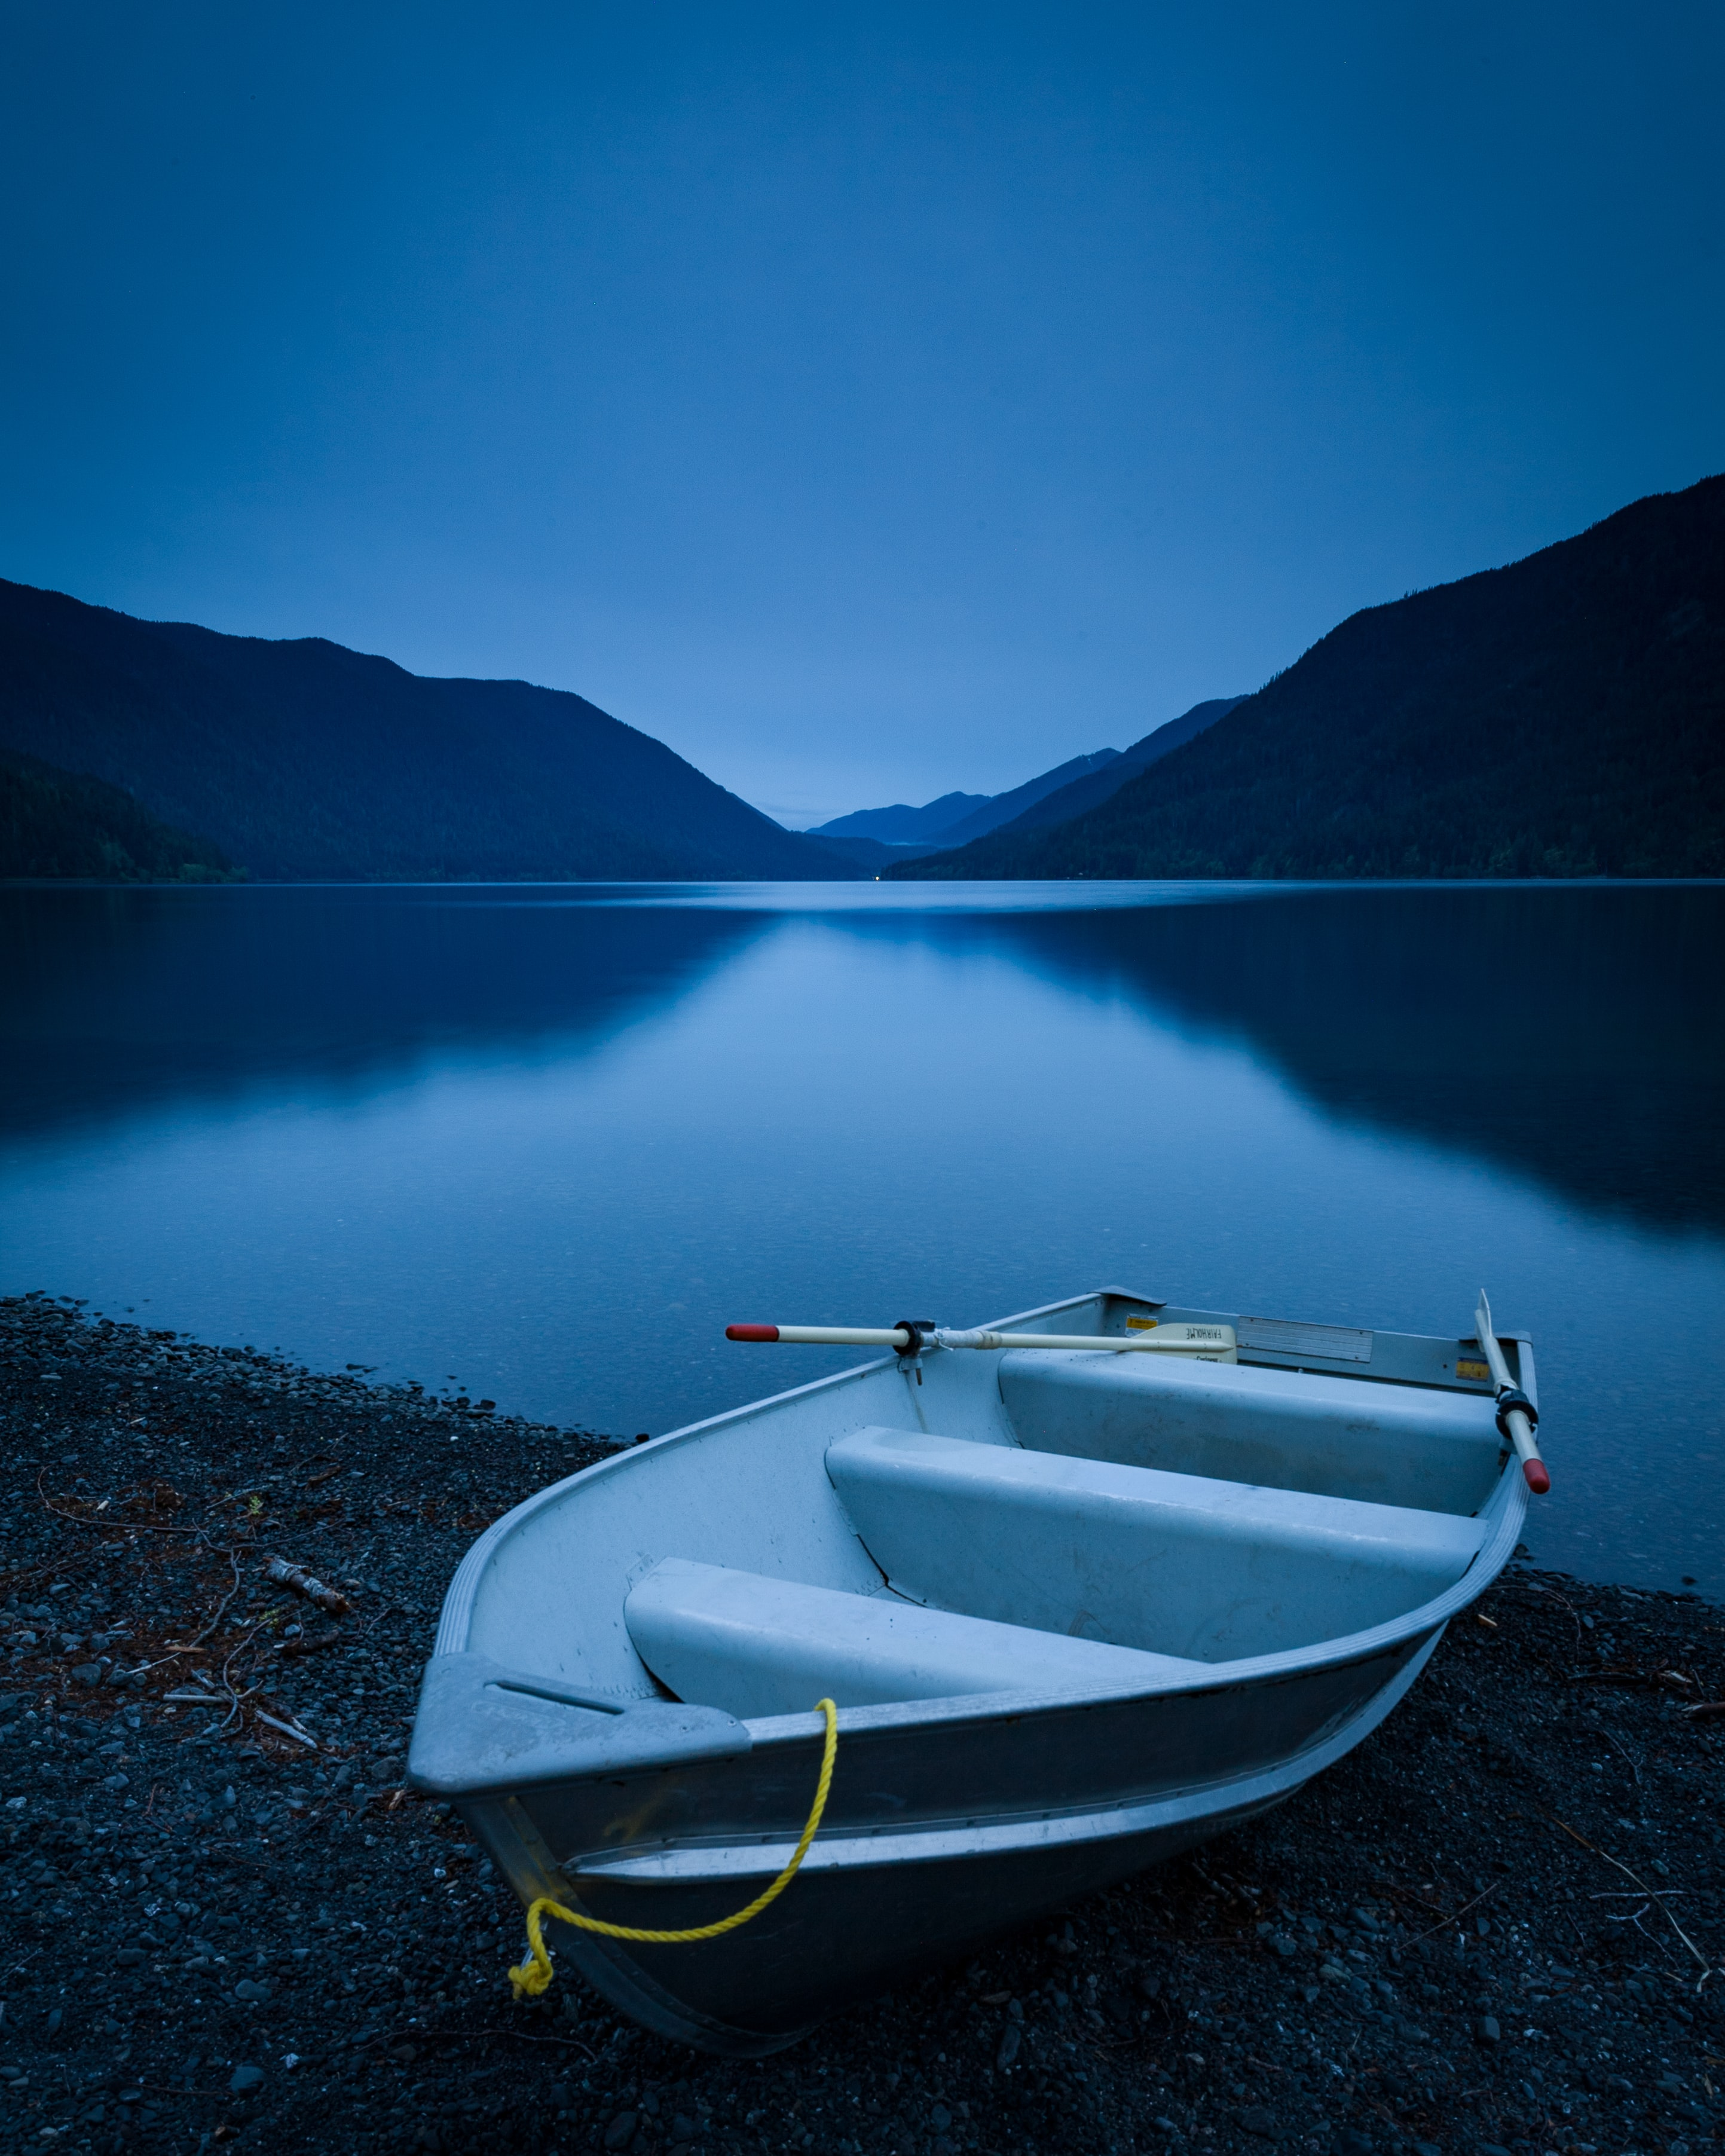 white rowboat near lake during clear blue sky